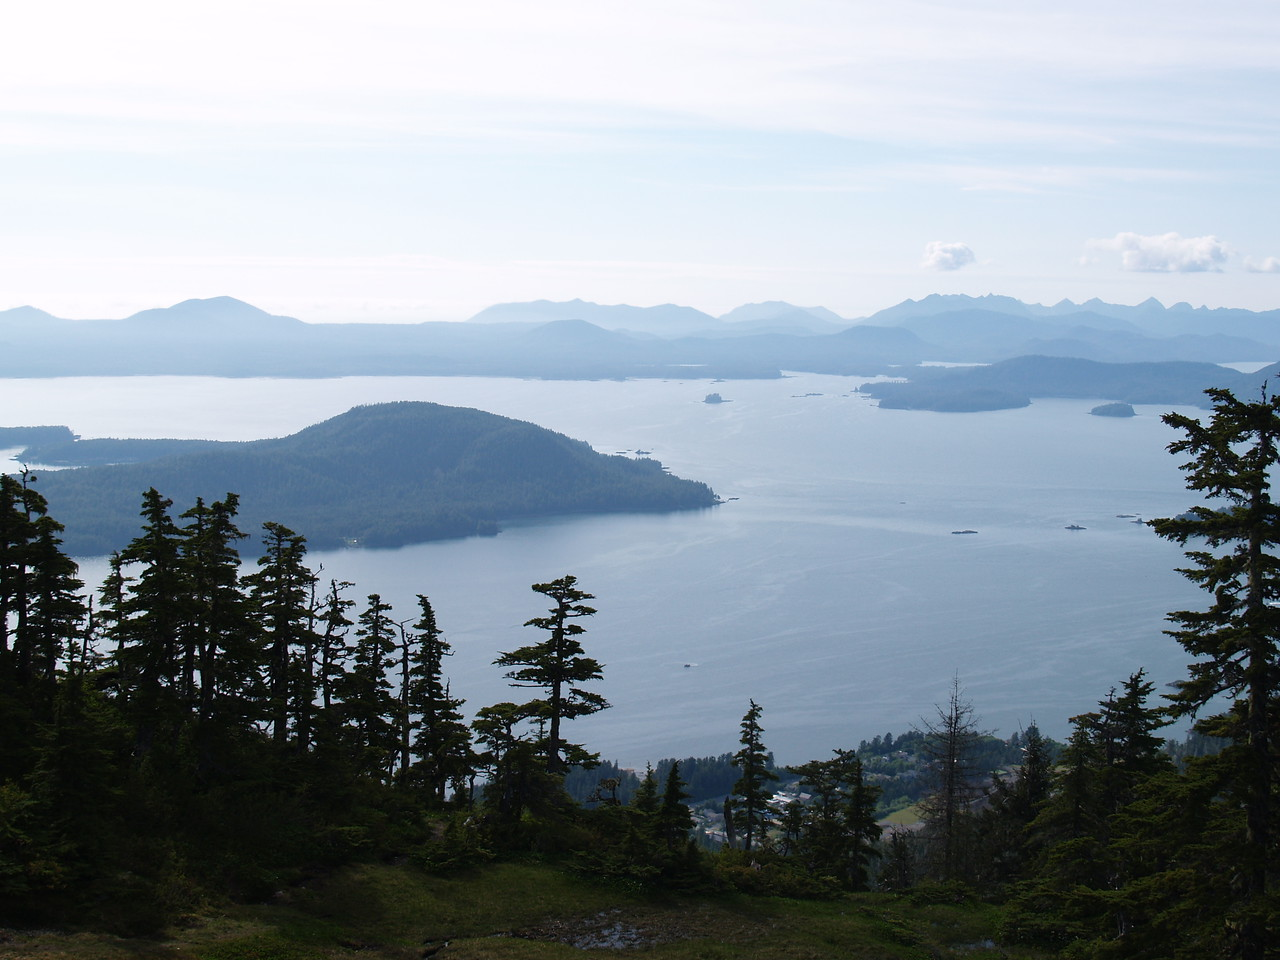 Another view from Harbor Mountain.